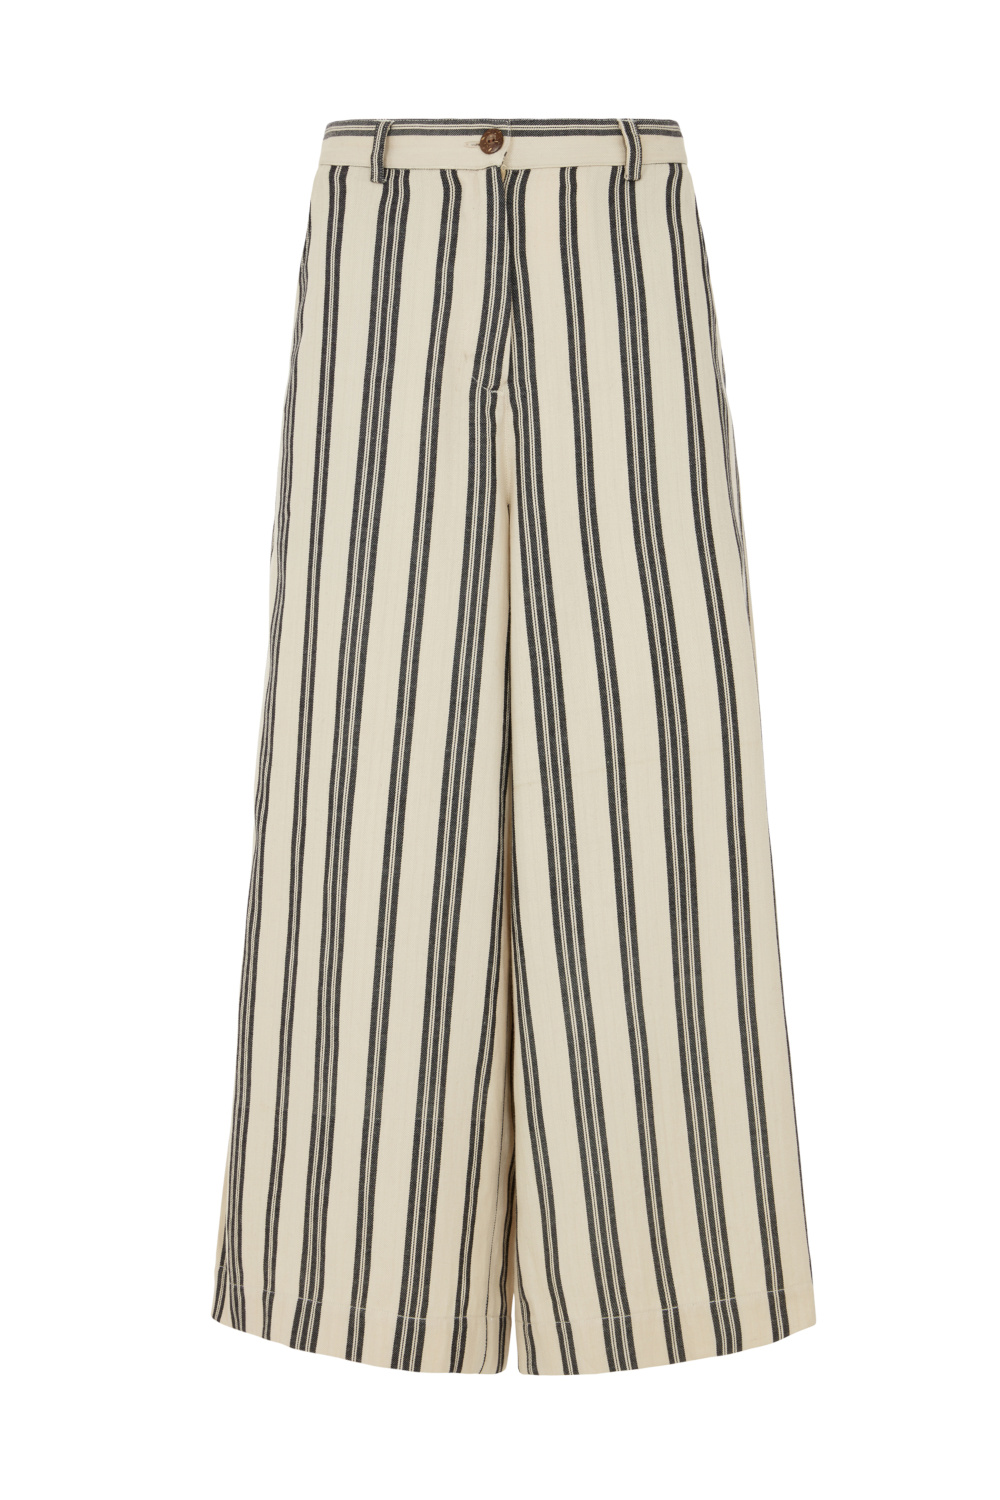 Peopletree Culotte Shauna Striped 5